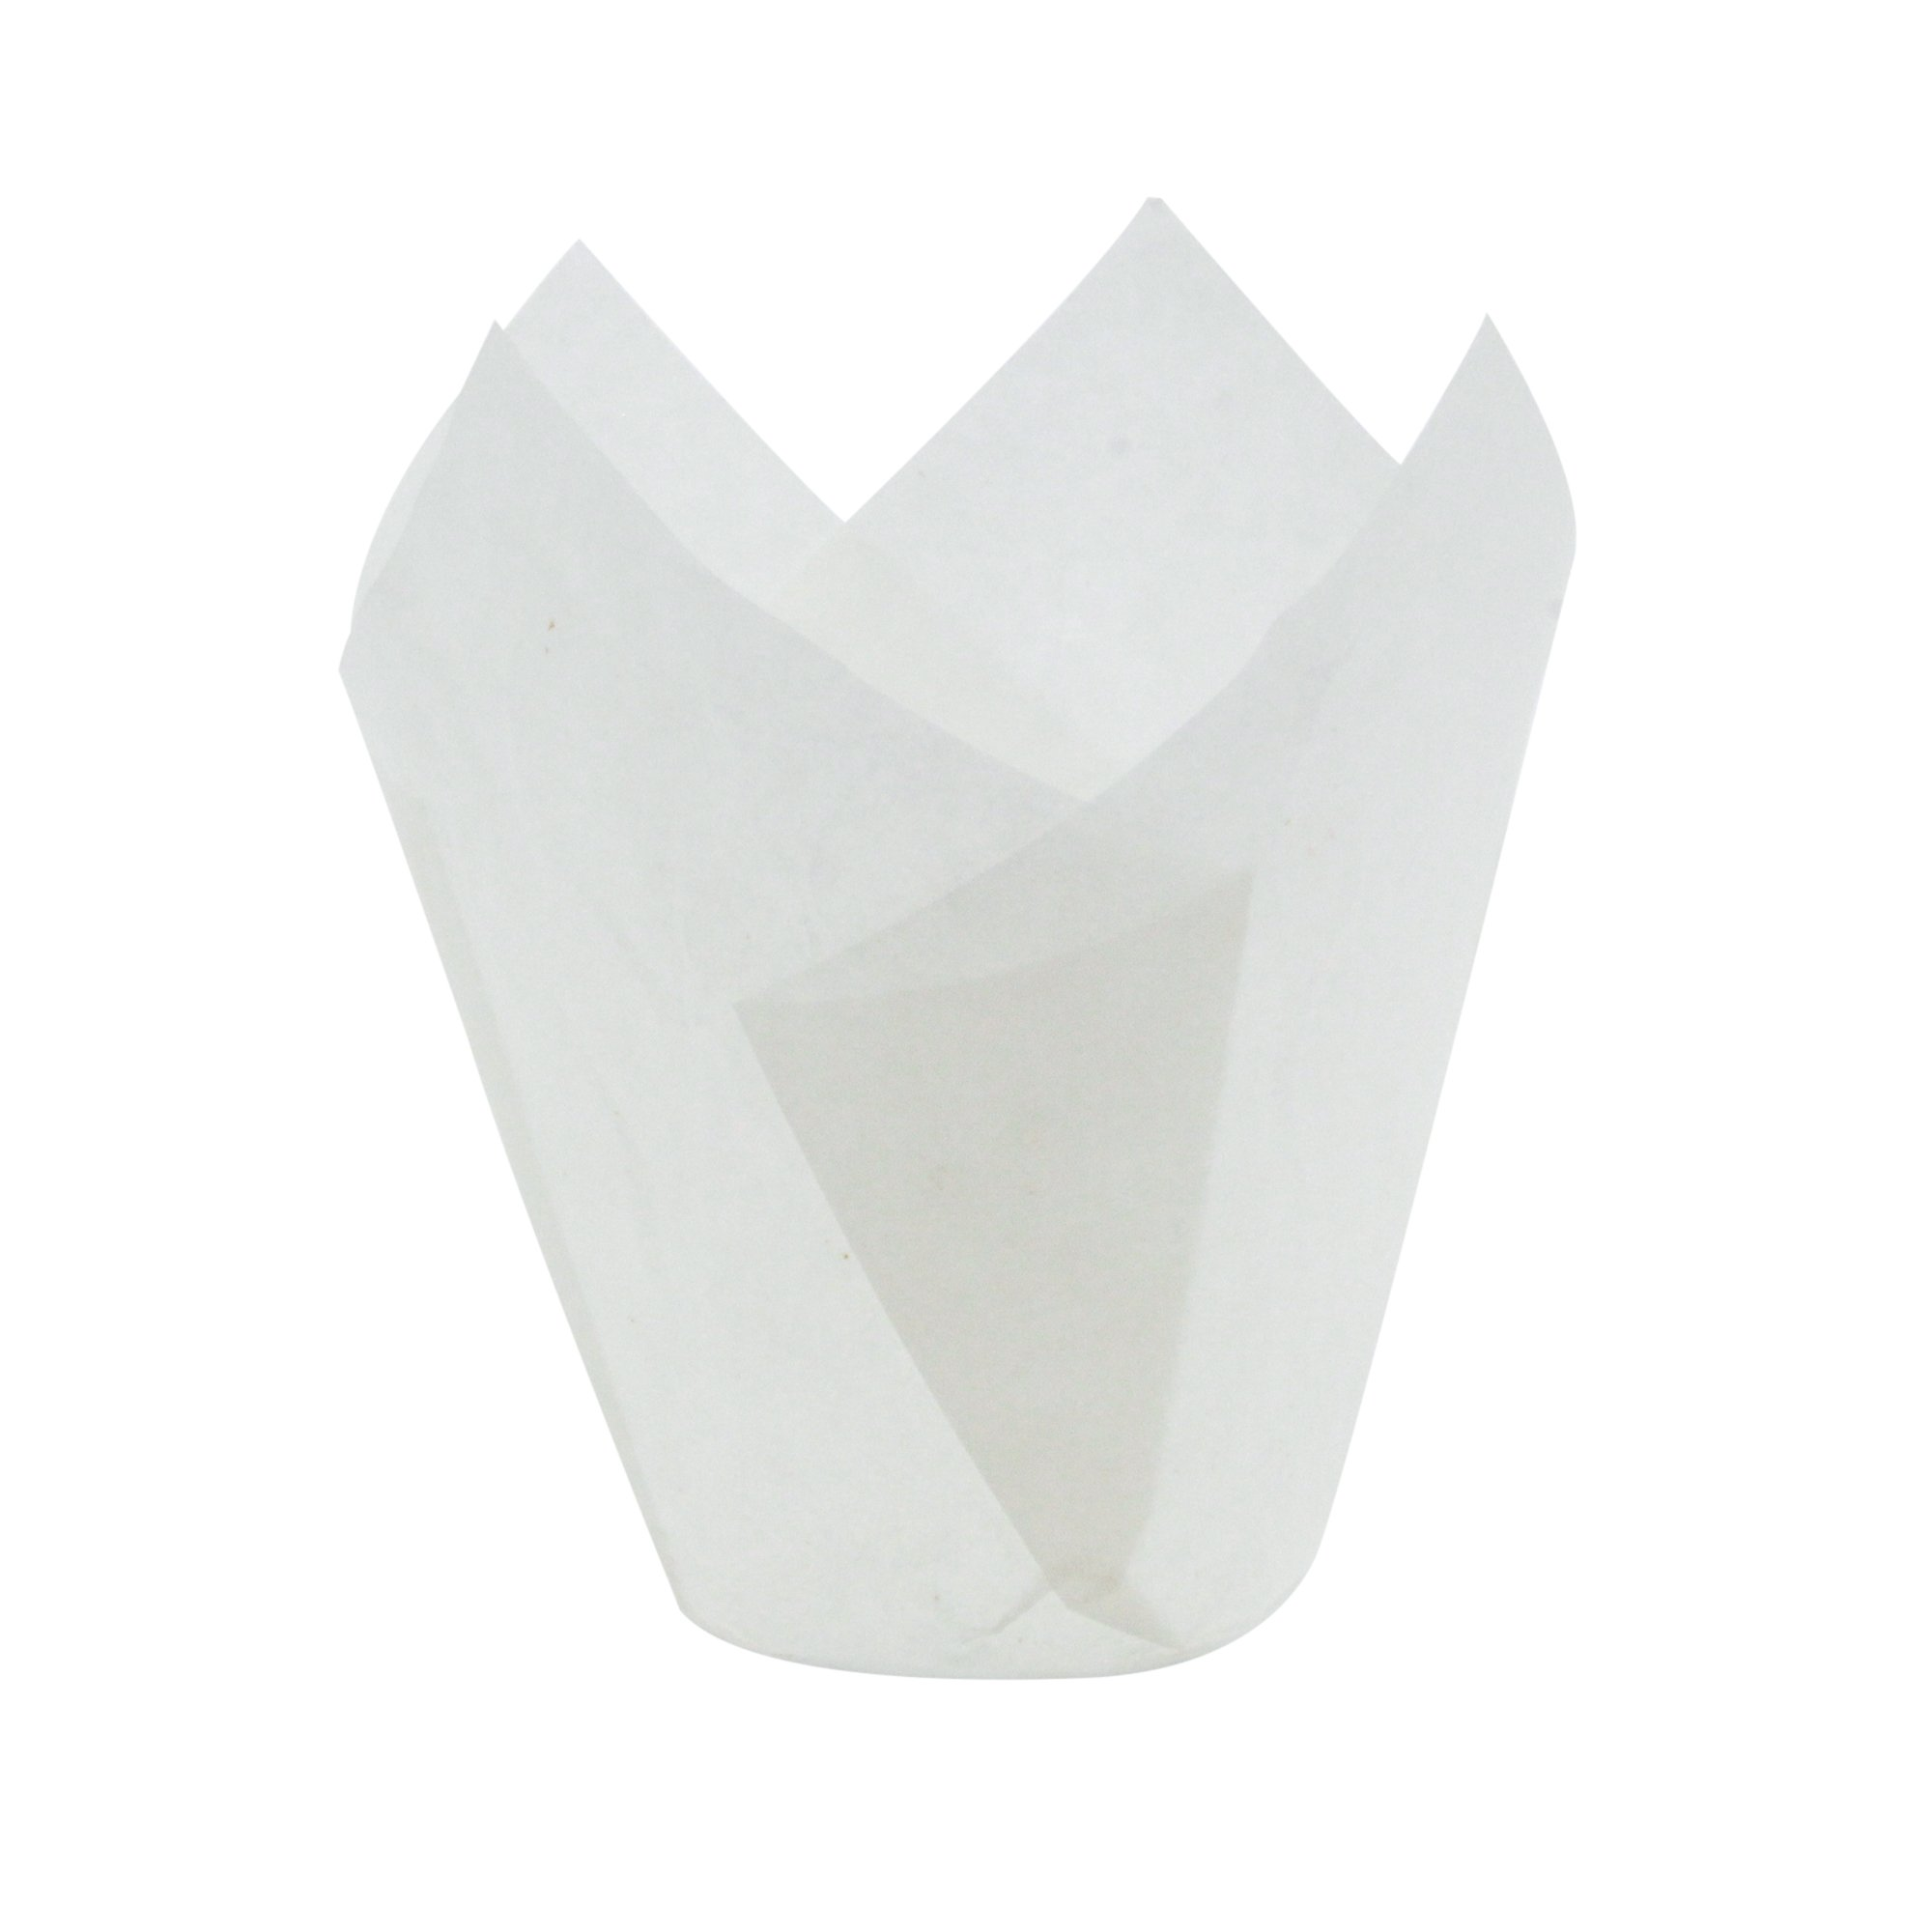 Tulip Cupcake Liner White Paper Baking Cups easy Release Muffin cup / No need To Spray Cup Perfect for Baking Muffins and Cupcakes, Medium Size: Tip H 3-17/64'' x 1-57/64'',(2000 pcs) by Ecobake